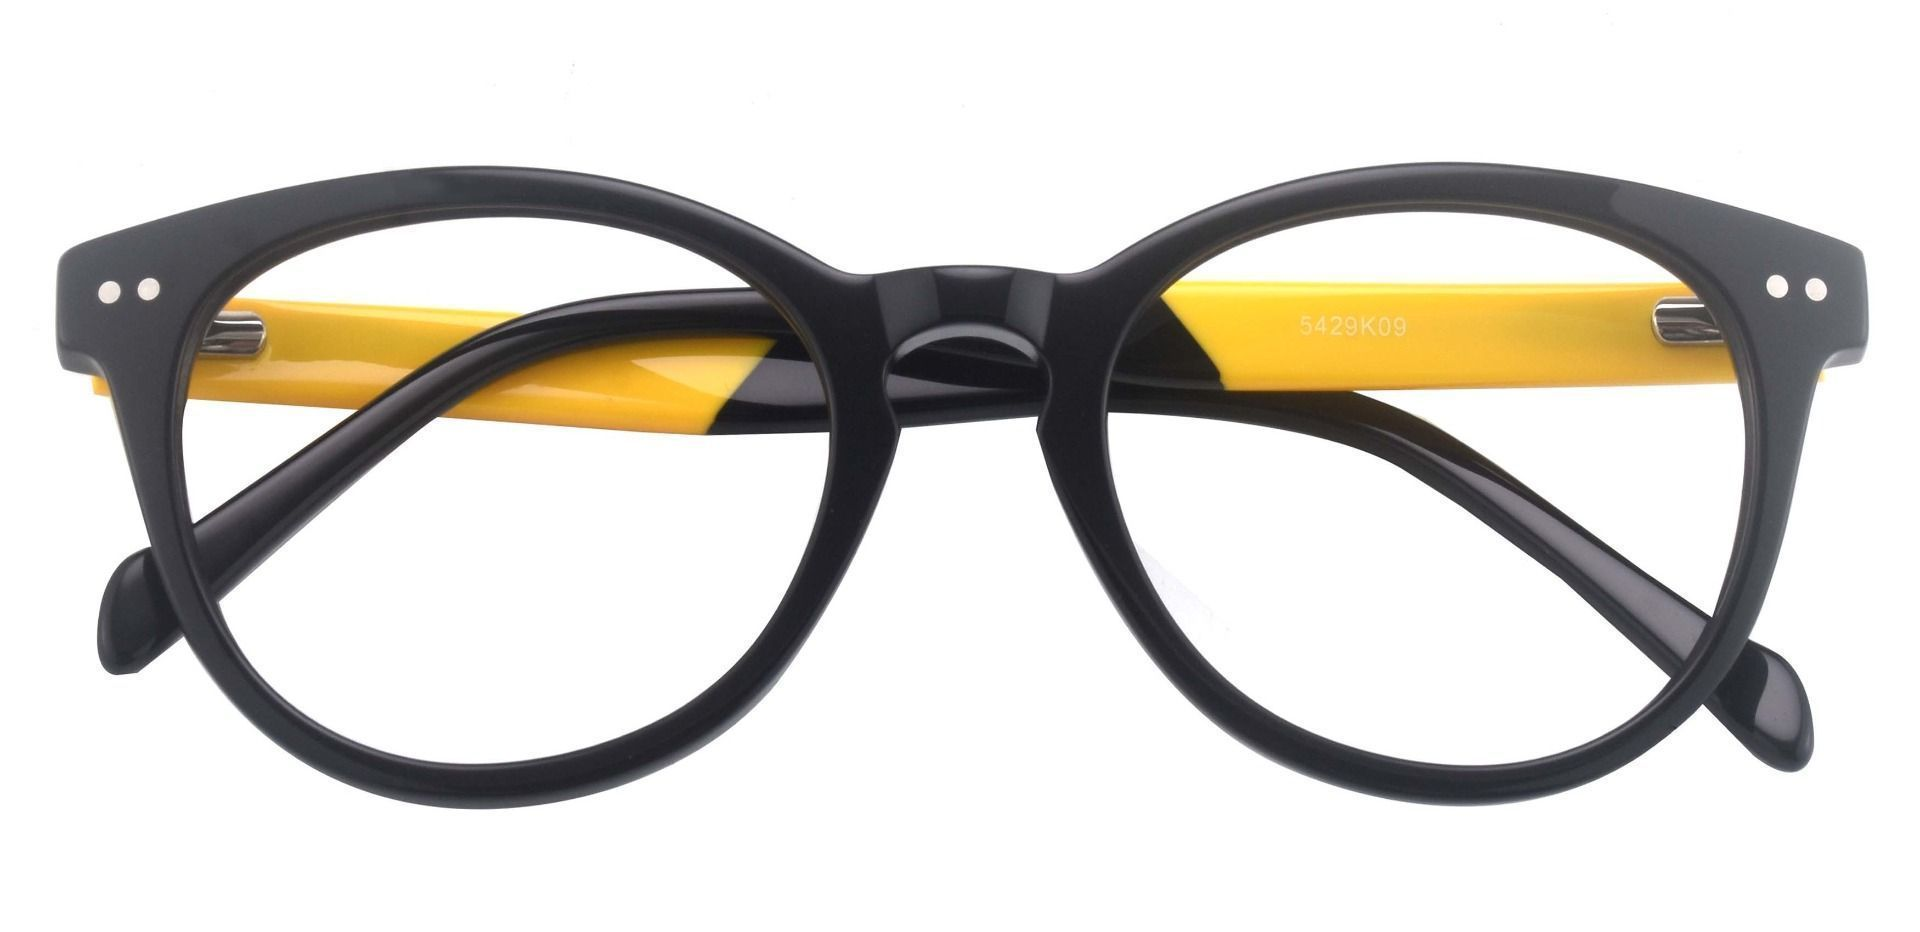 Oakland Oval Blue Light Blocking Glasses - The Frame Is Black And Gold